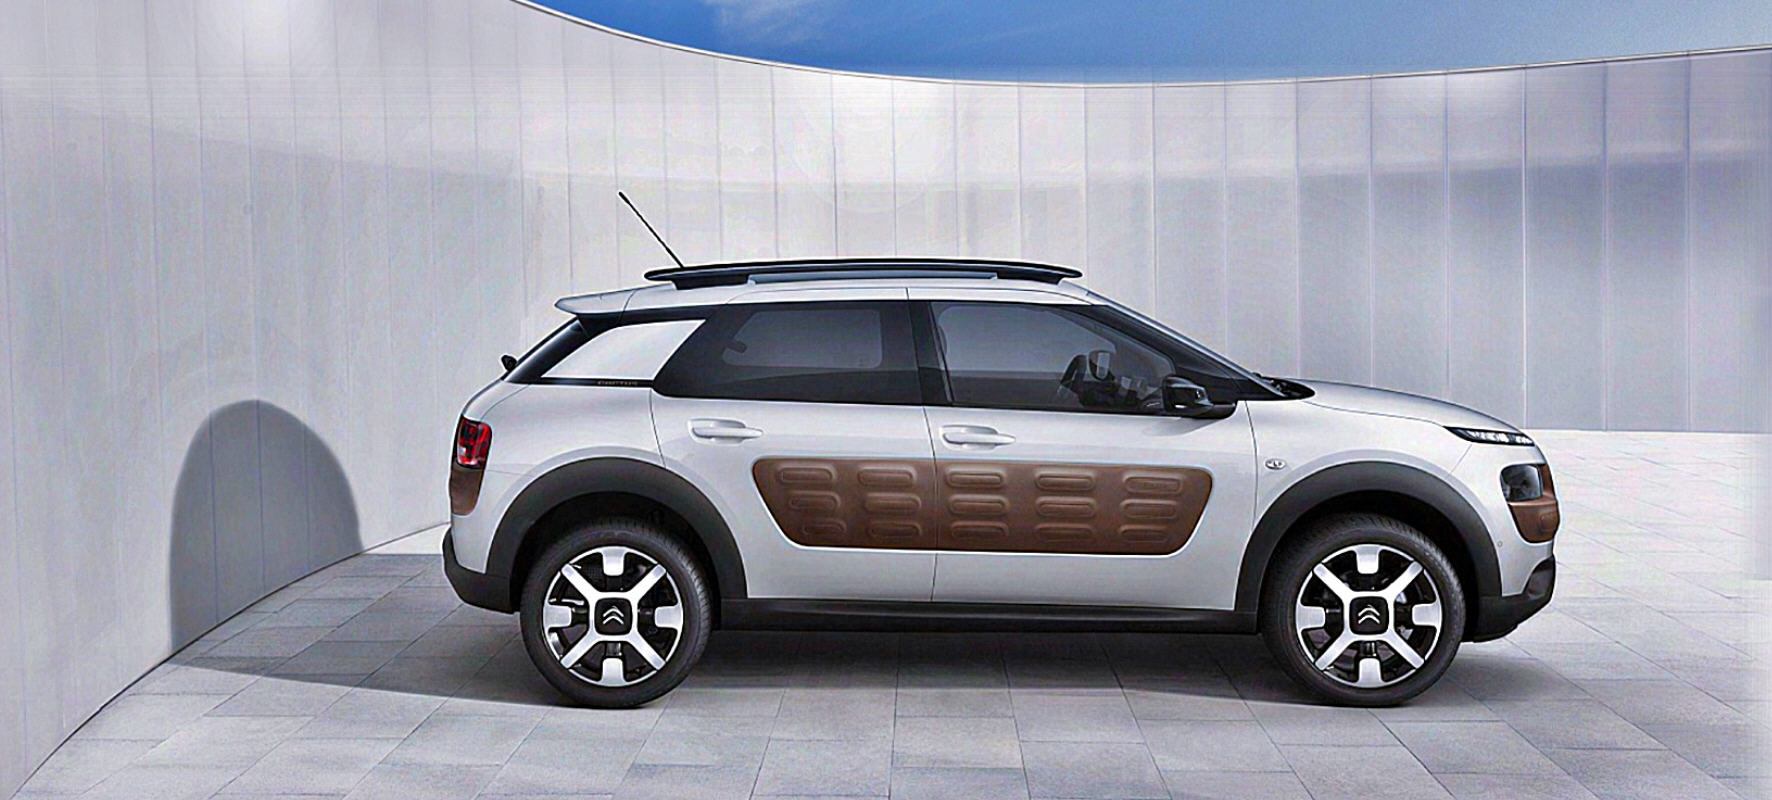 citroen c4 cactus anteprima nazionale a convivio 2014. Black Bedroom Furniture Sets. Home Design Ideas